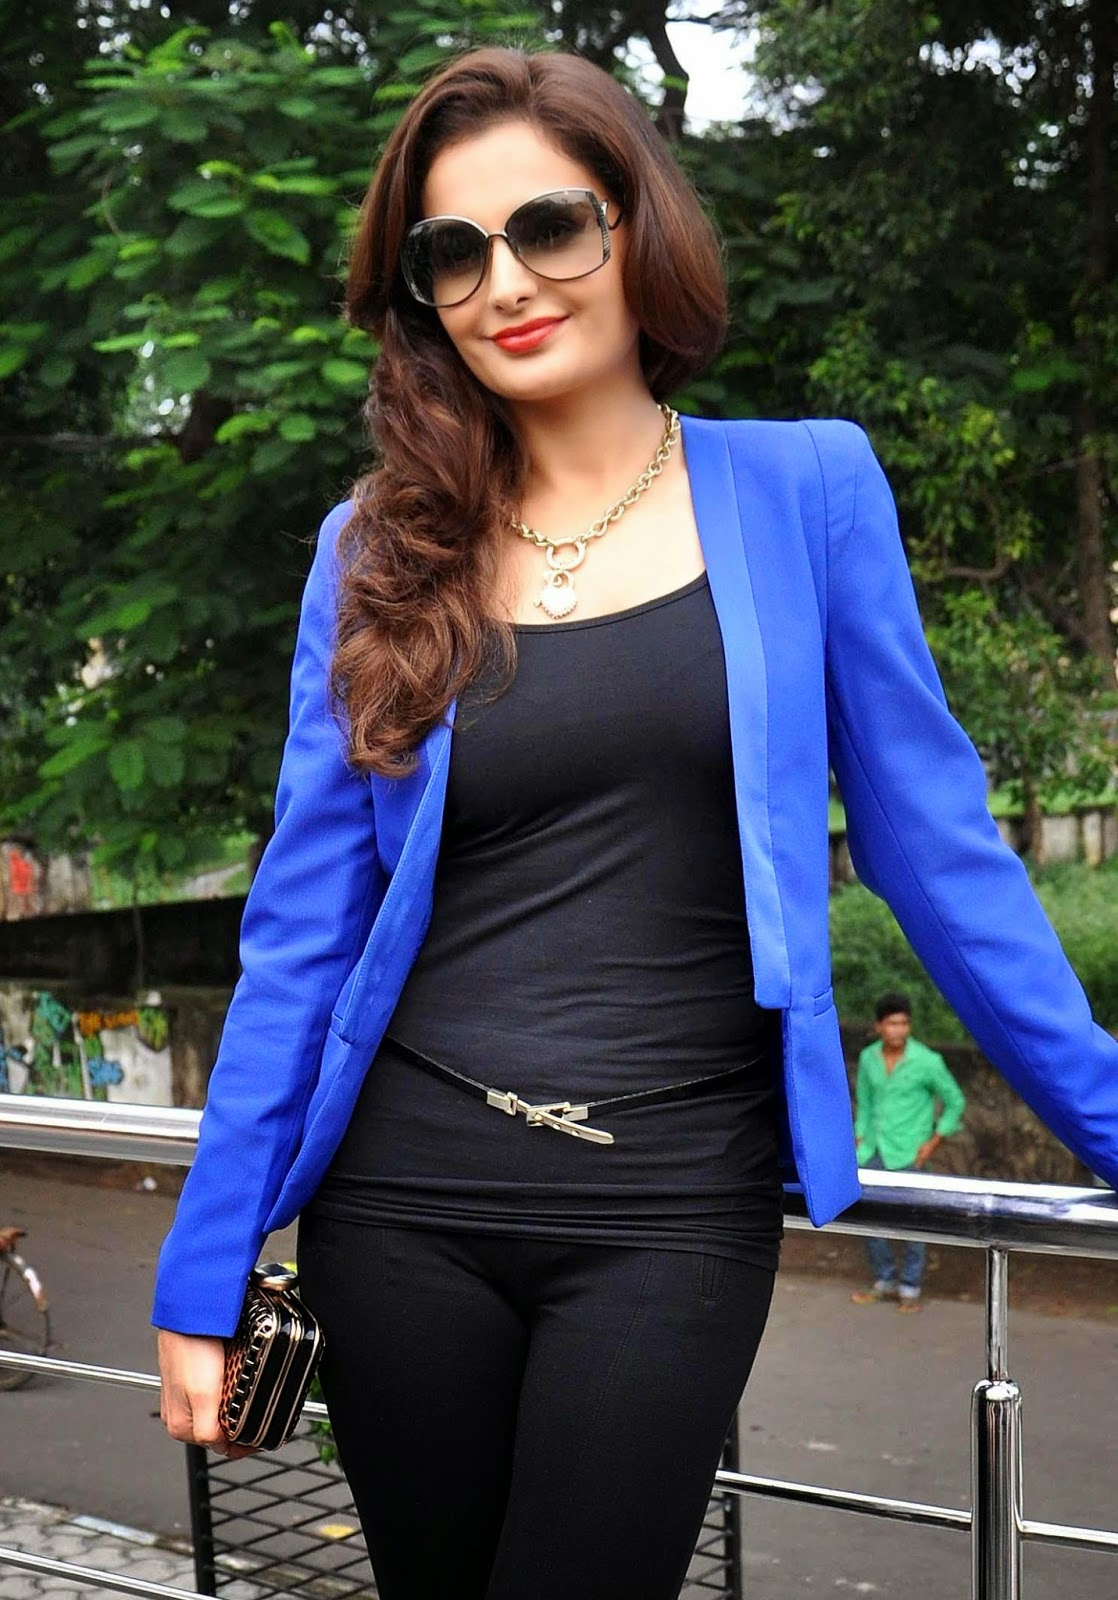 High Quality Bollywood Celebrity Pictures Monica Bedi -8763